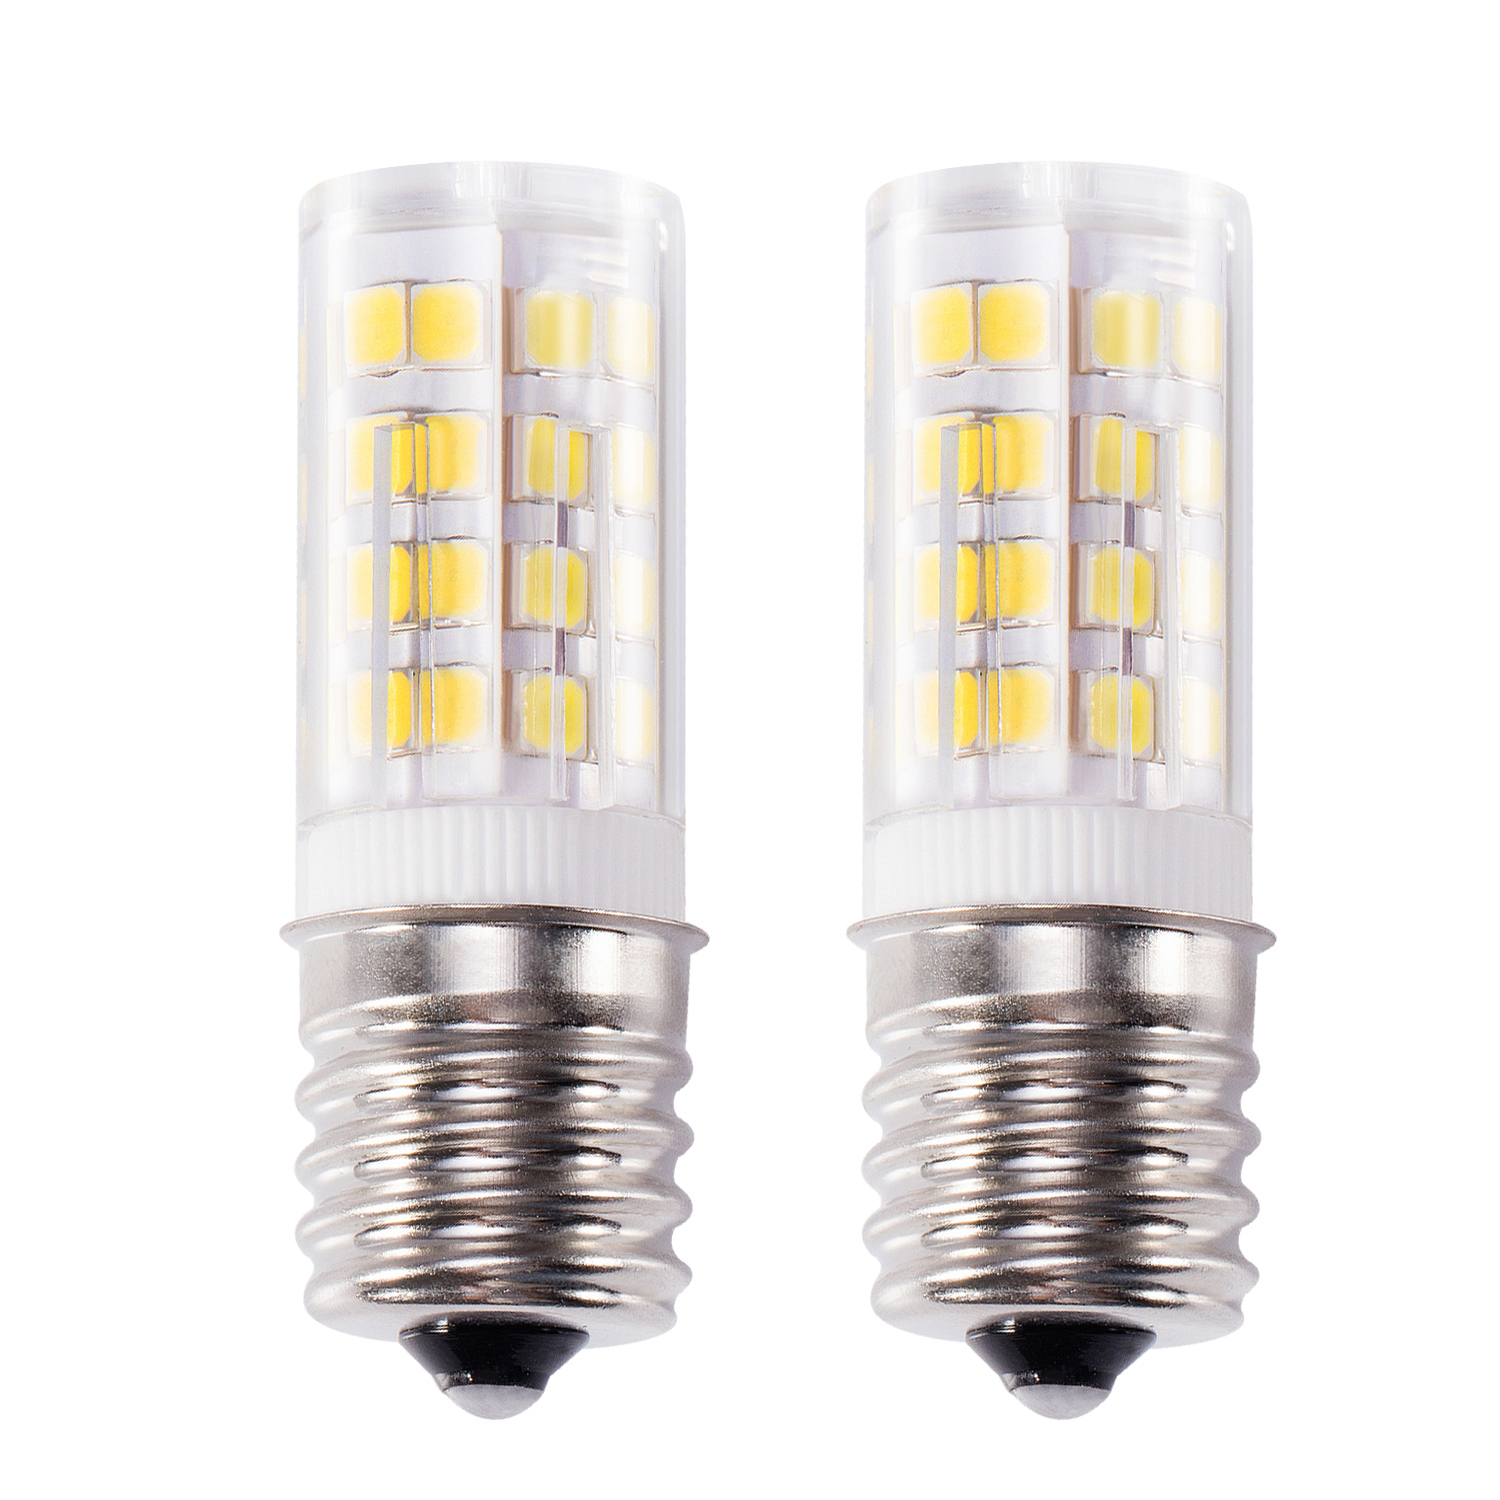 2x Kohree E17 LED Bulb Microwave Oven Light Stove Bulb Light 4W Daylight White Non-dimmable 6000K 52X2835SMD AC110-130V